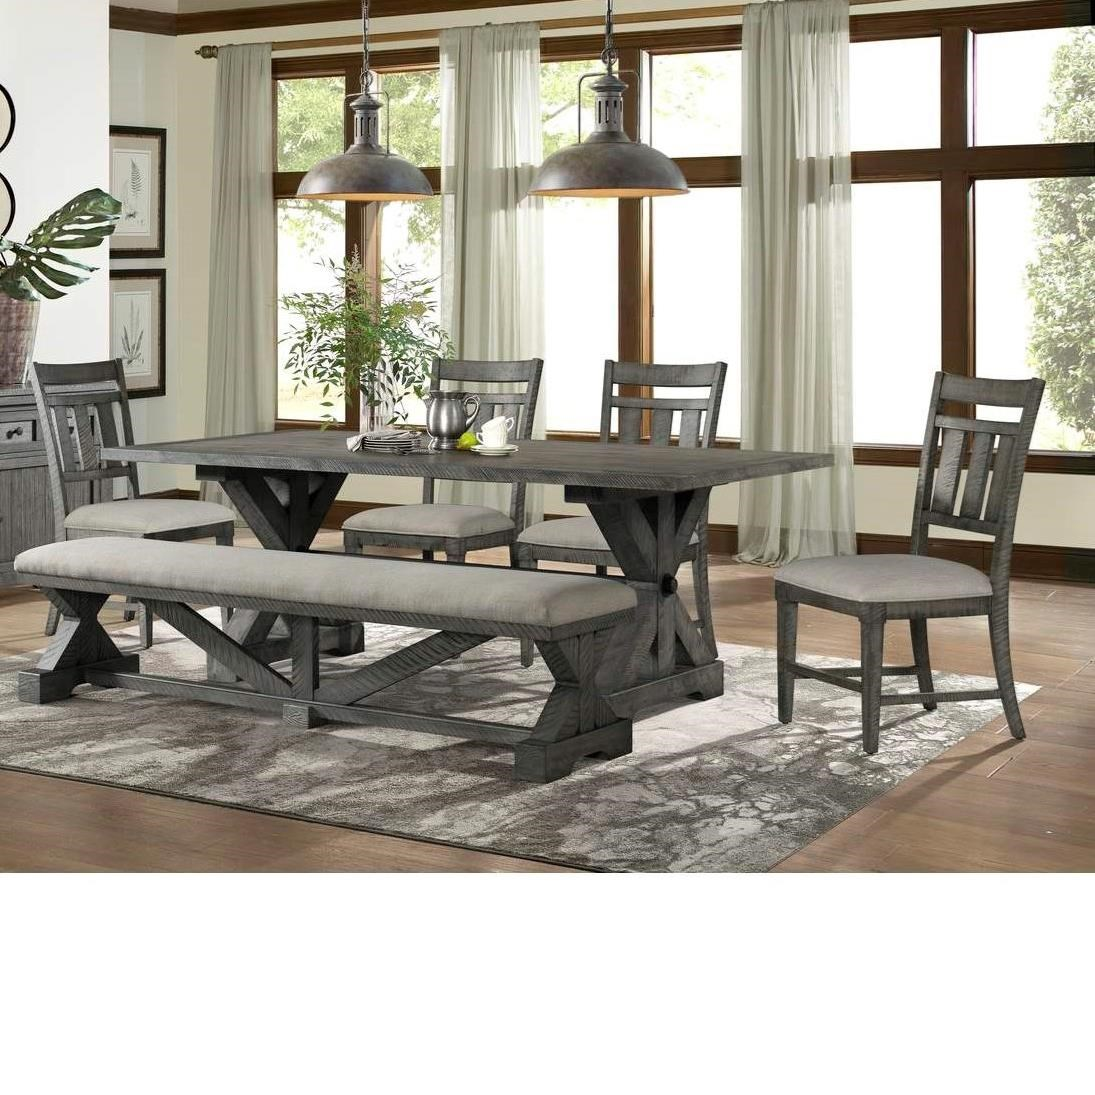 Old Forge  6-Piece Table, Chair, and Bench Set by Lane at Powell's Furniture and Mattress